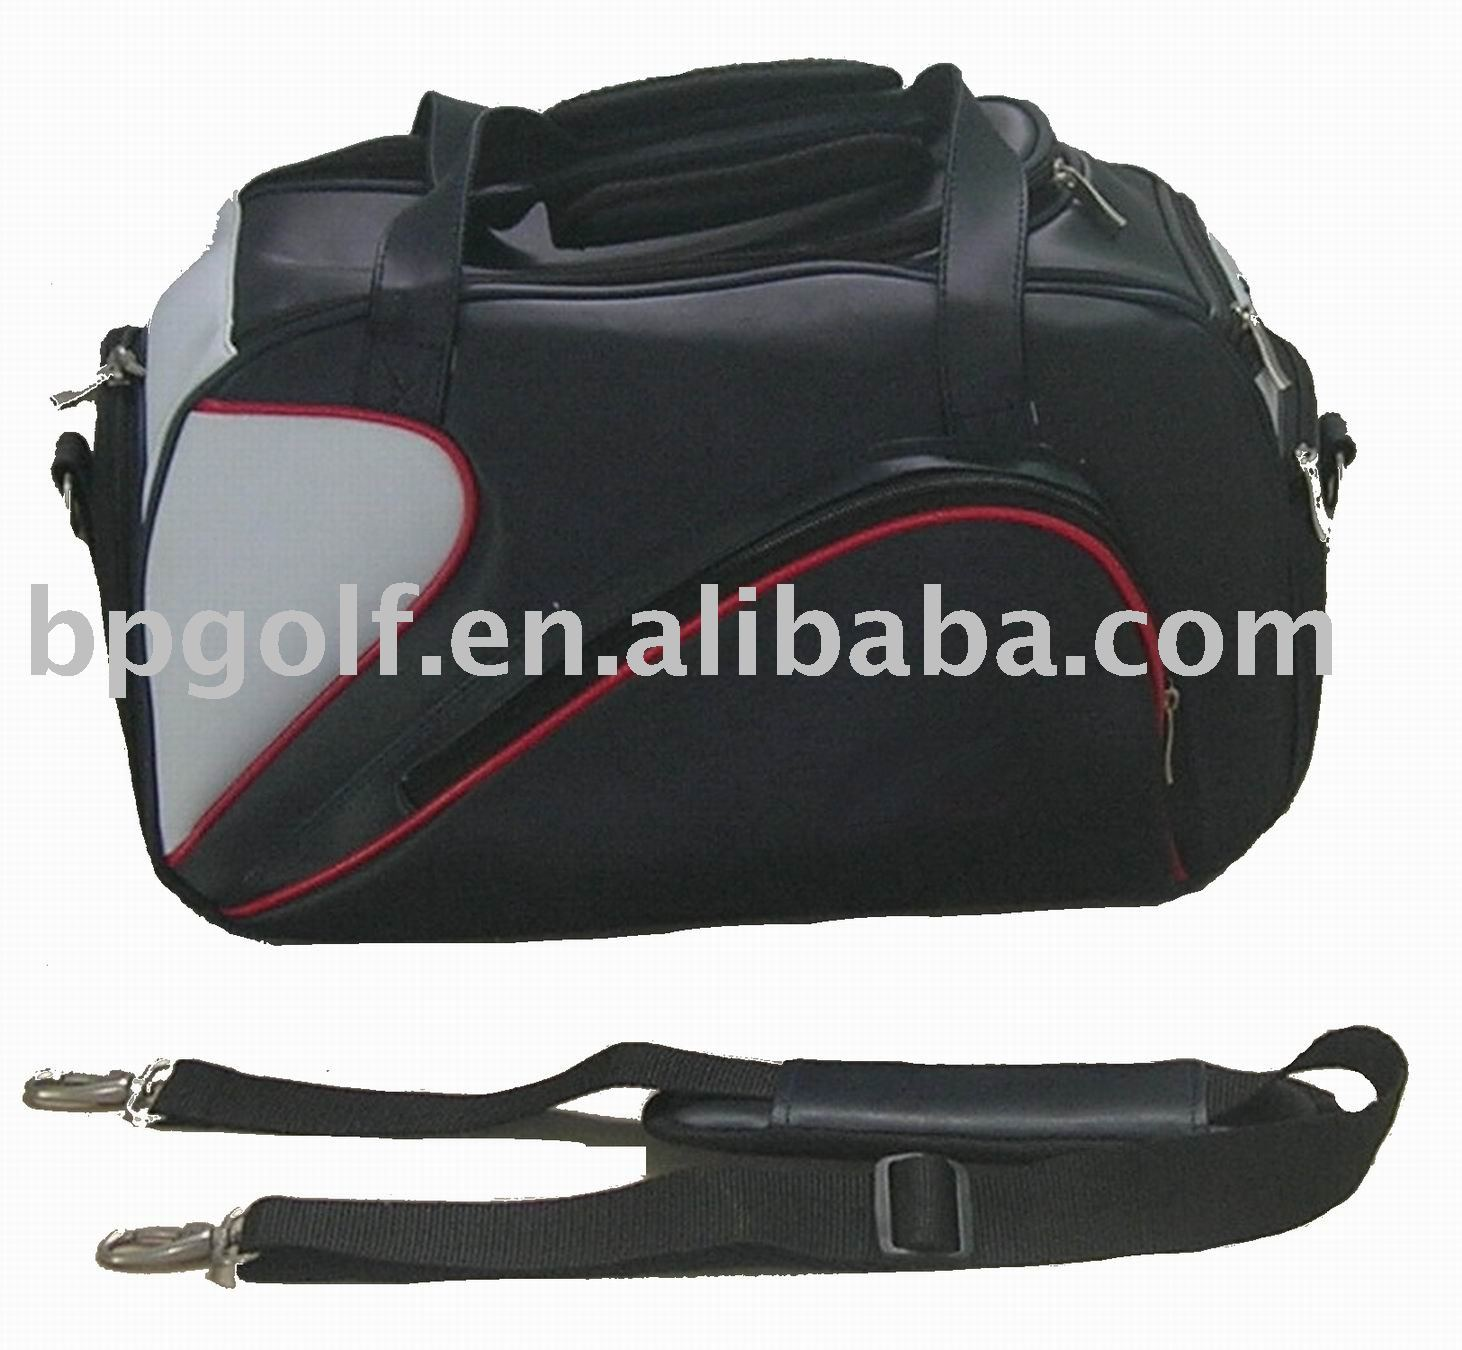 2010 Fashion Golf Carry Bags